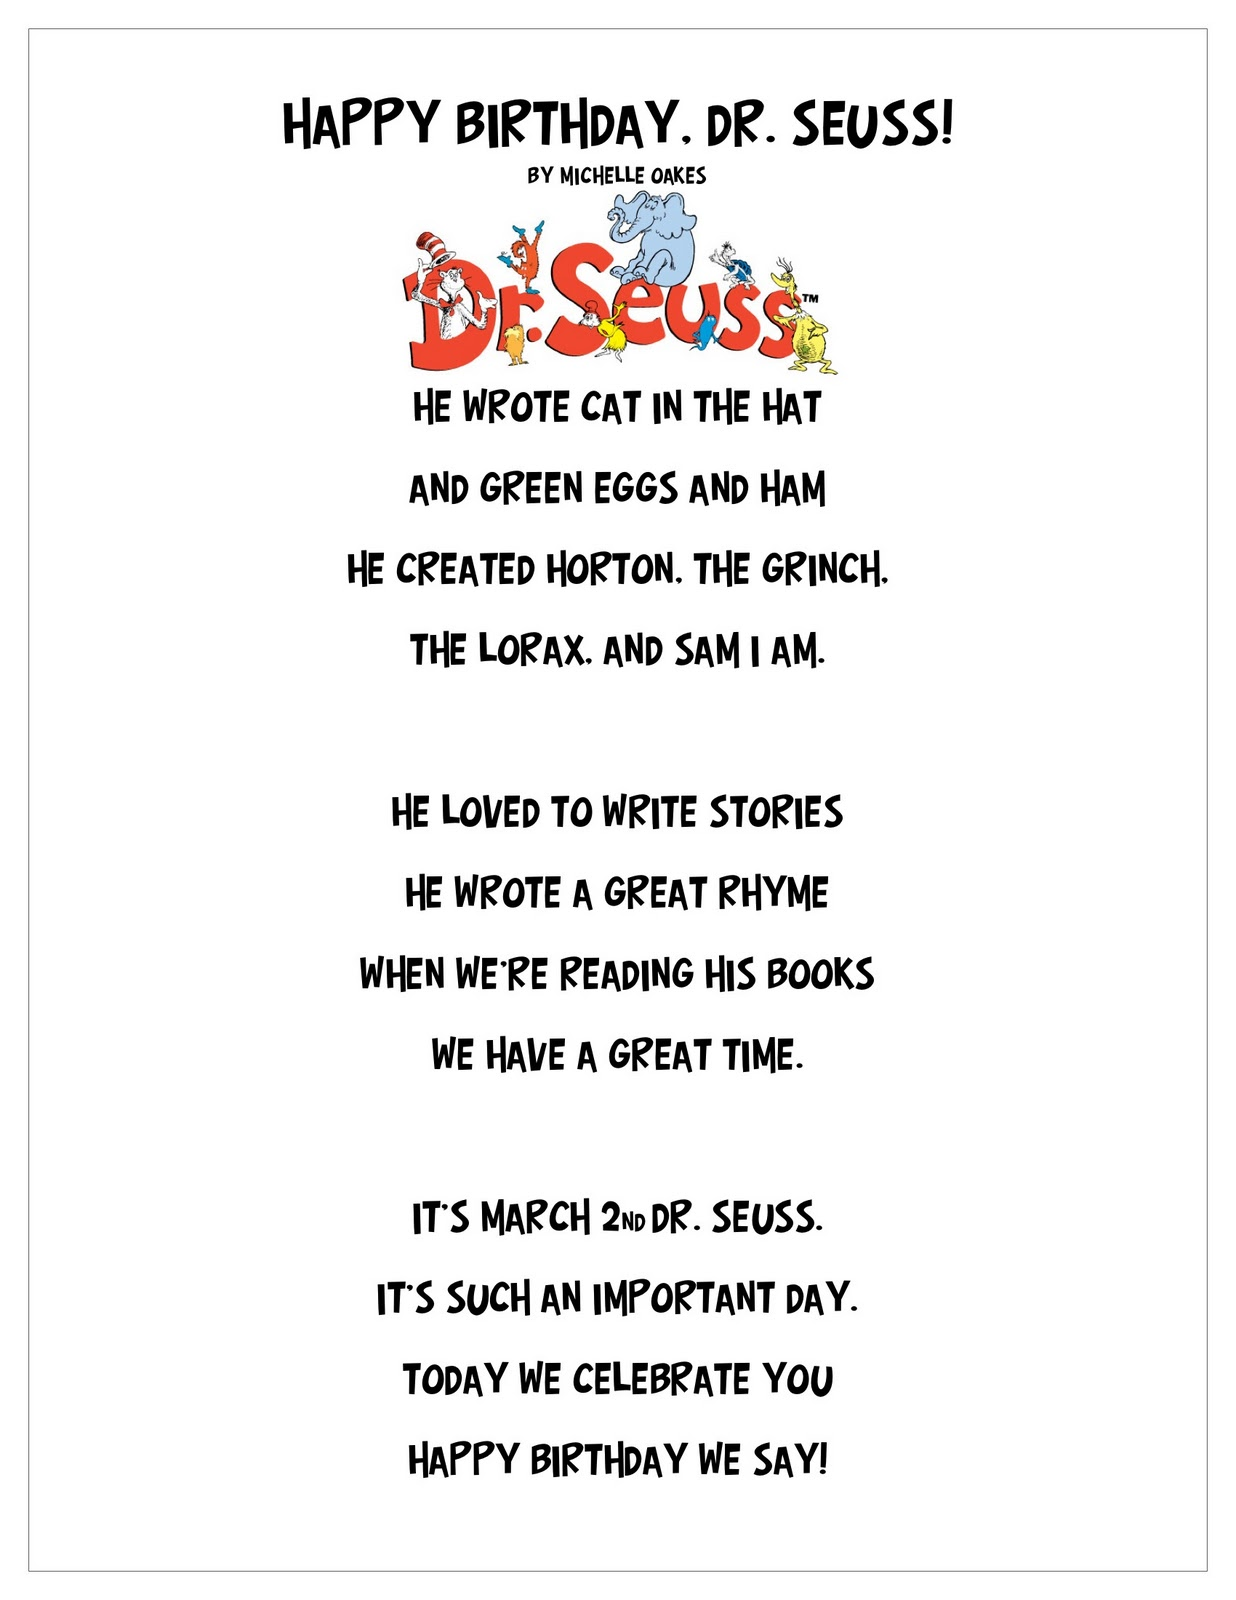 Dr Seuss Quotes About Friendship Used Poems Poems